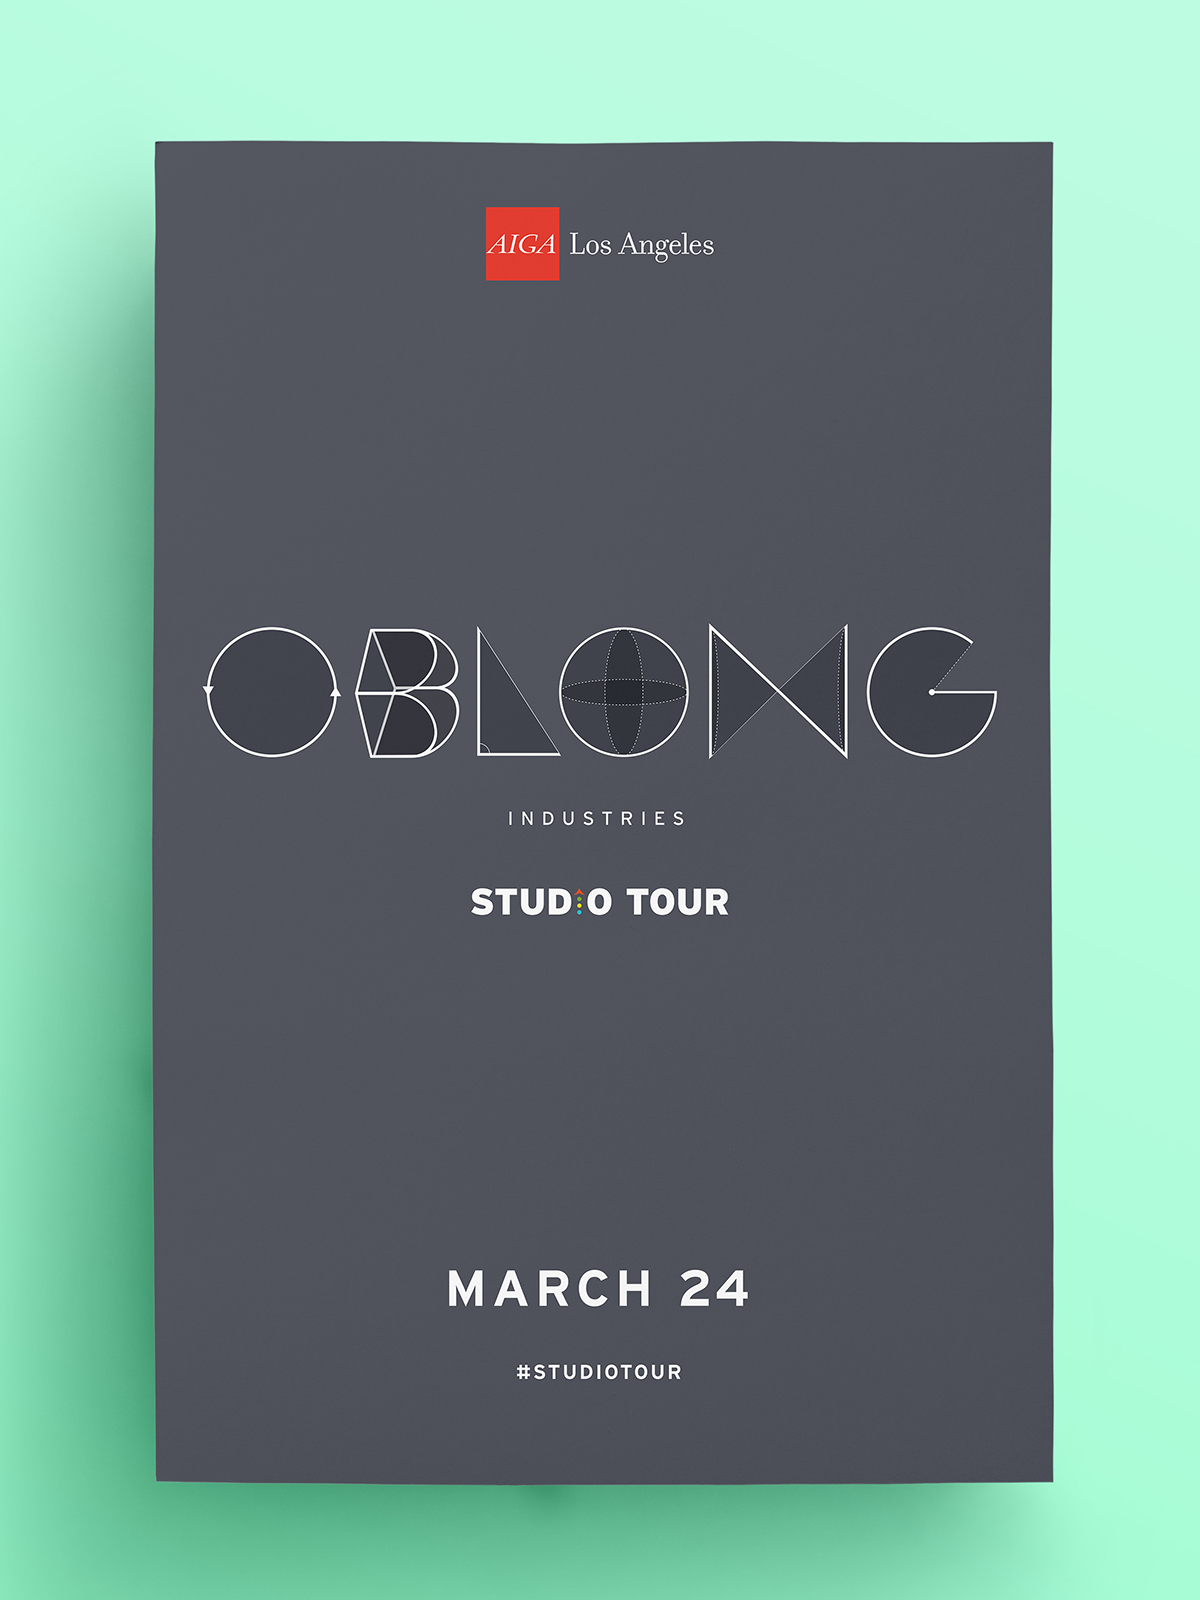 Oblong Industries Studio Tour